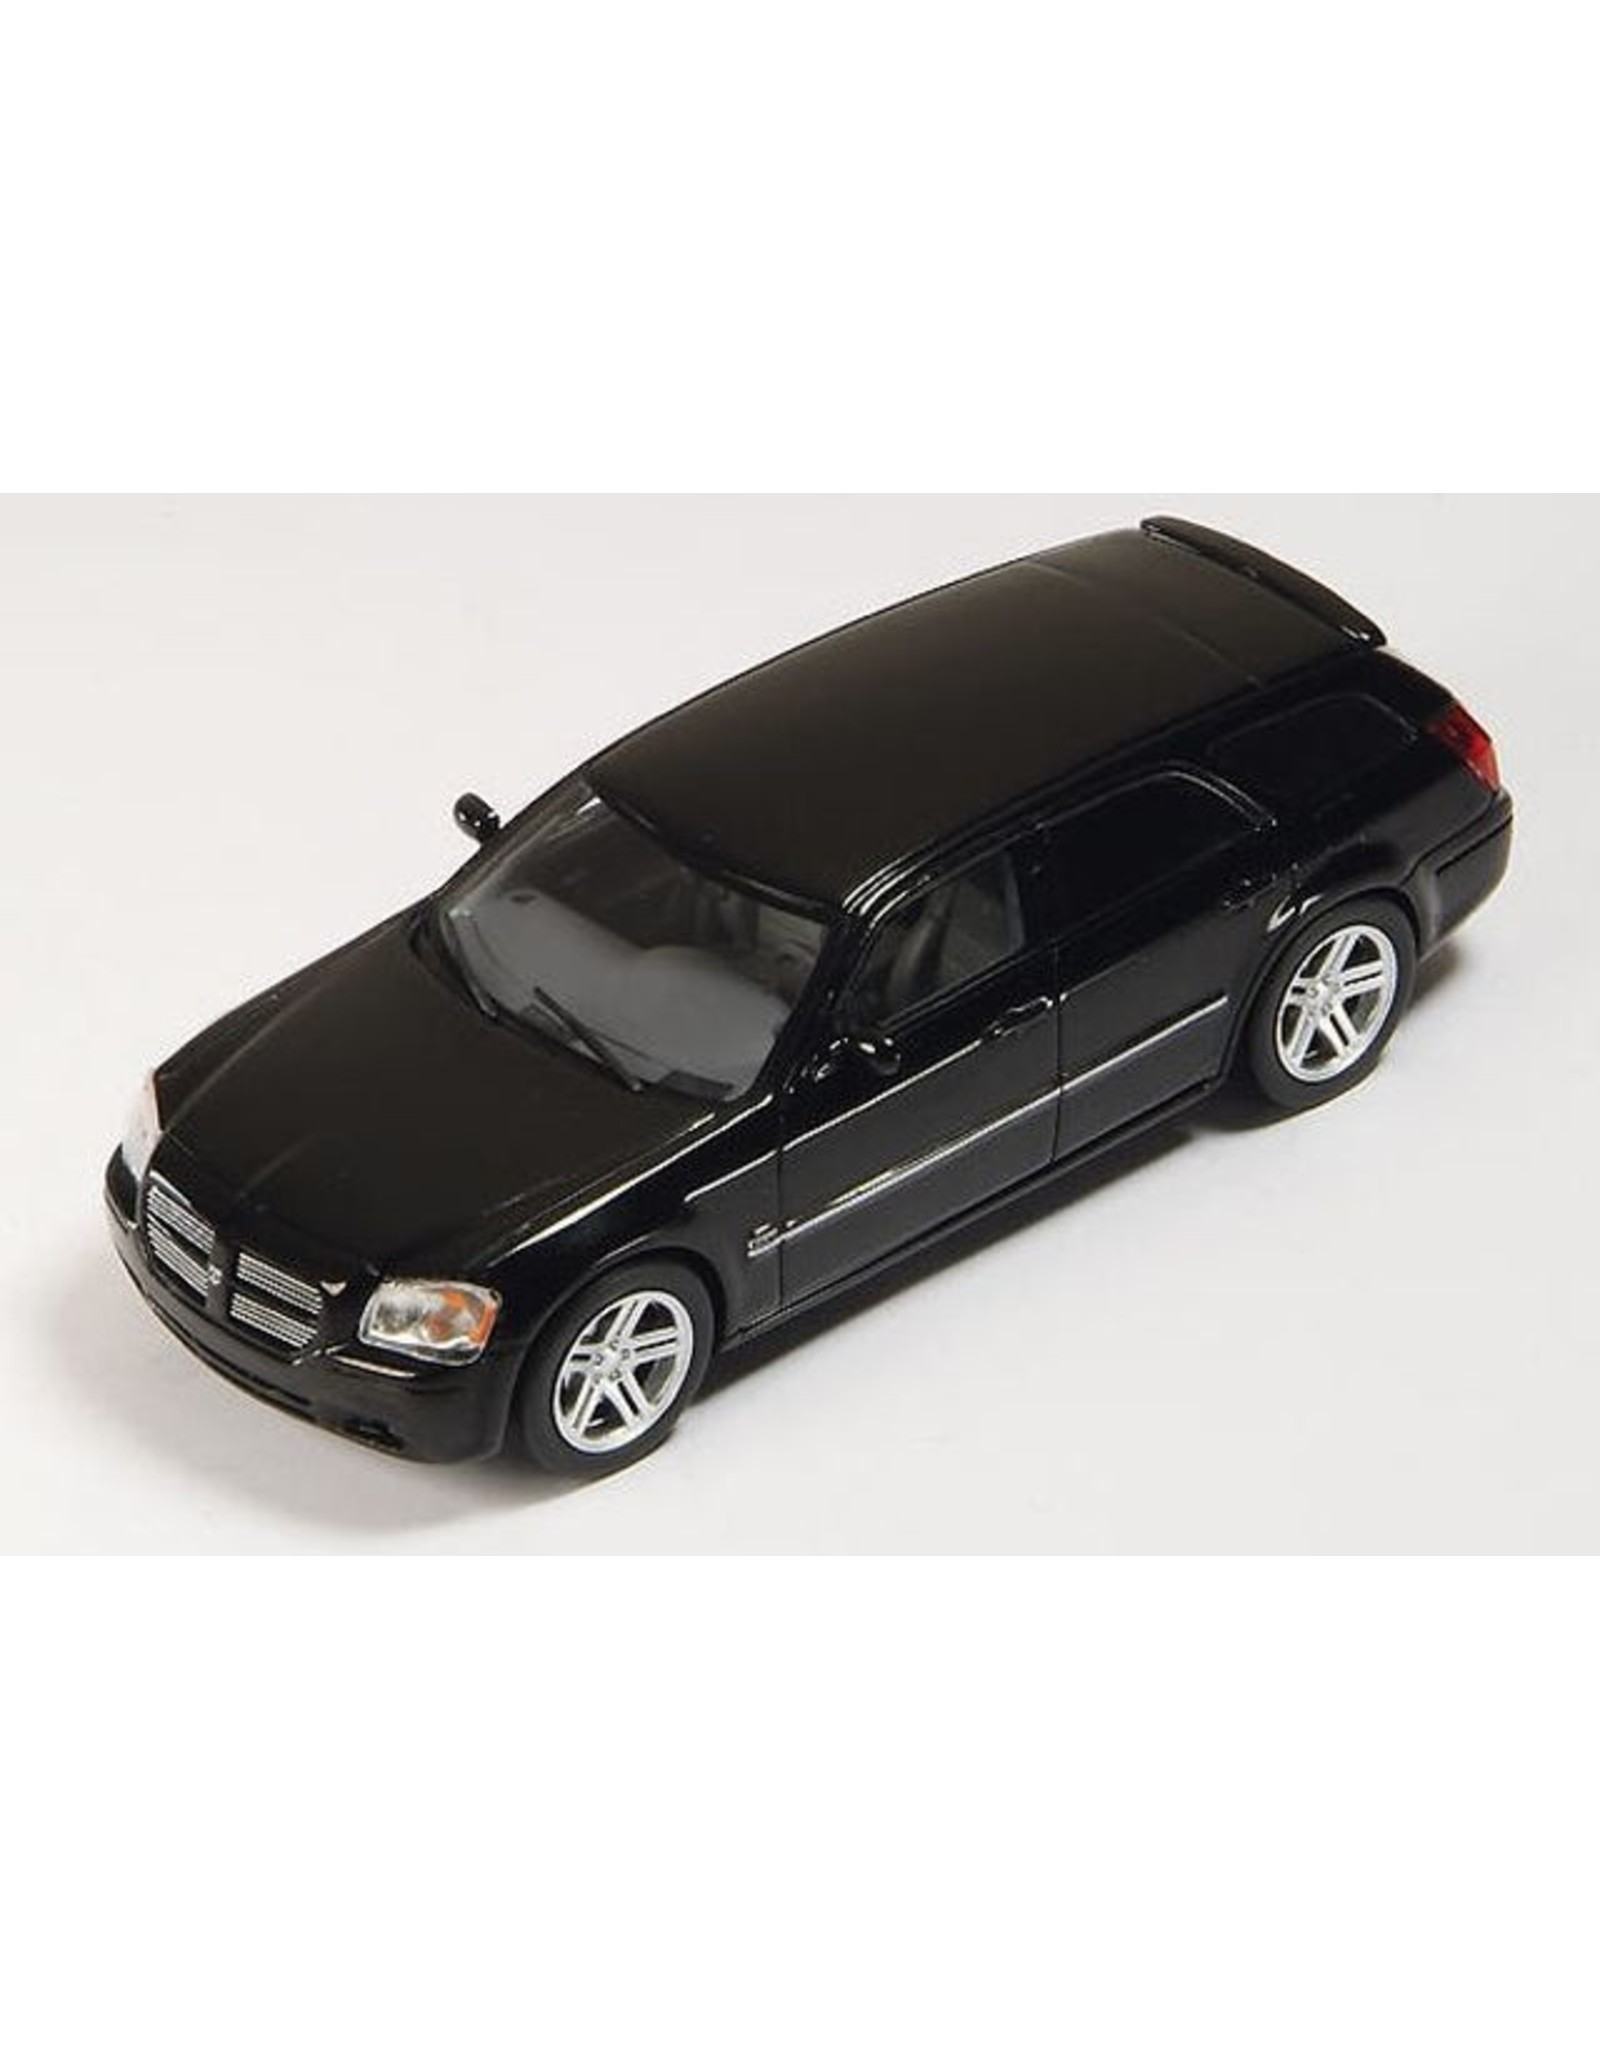 Dodge(Chrysler) DODGE MAGNUM RT HEMI-2005(black)